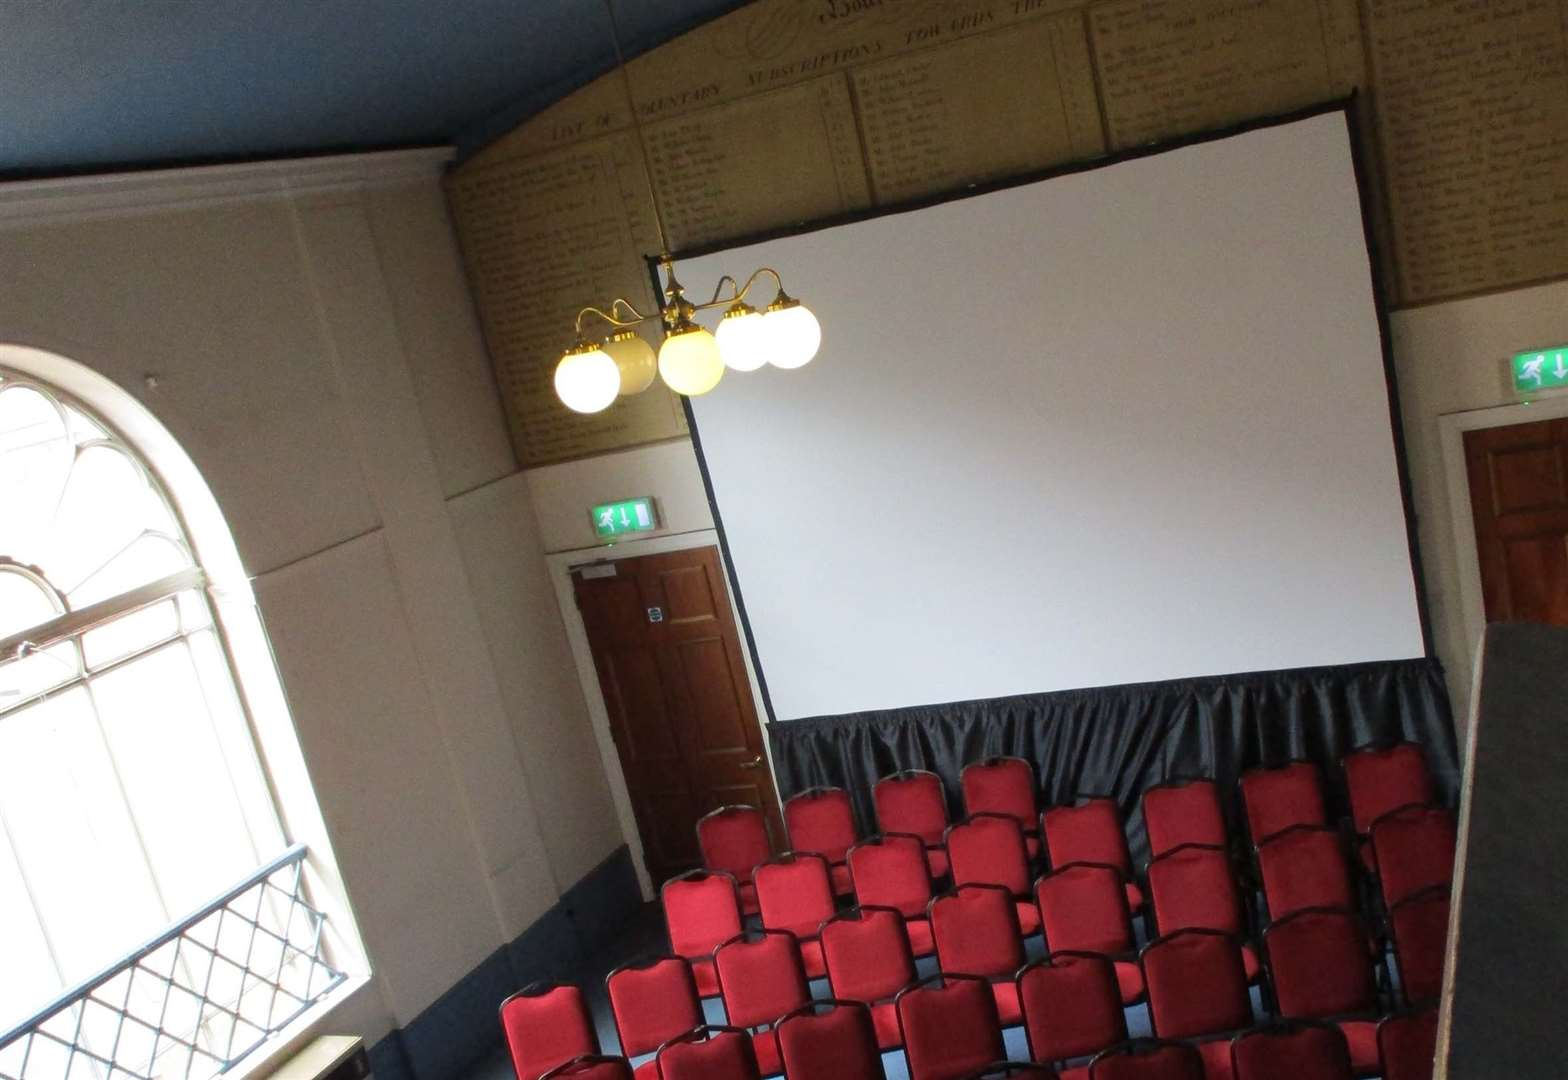 Cinema pops up at Bourne Town Hall